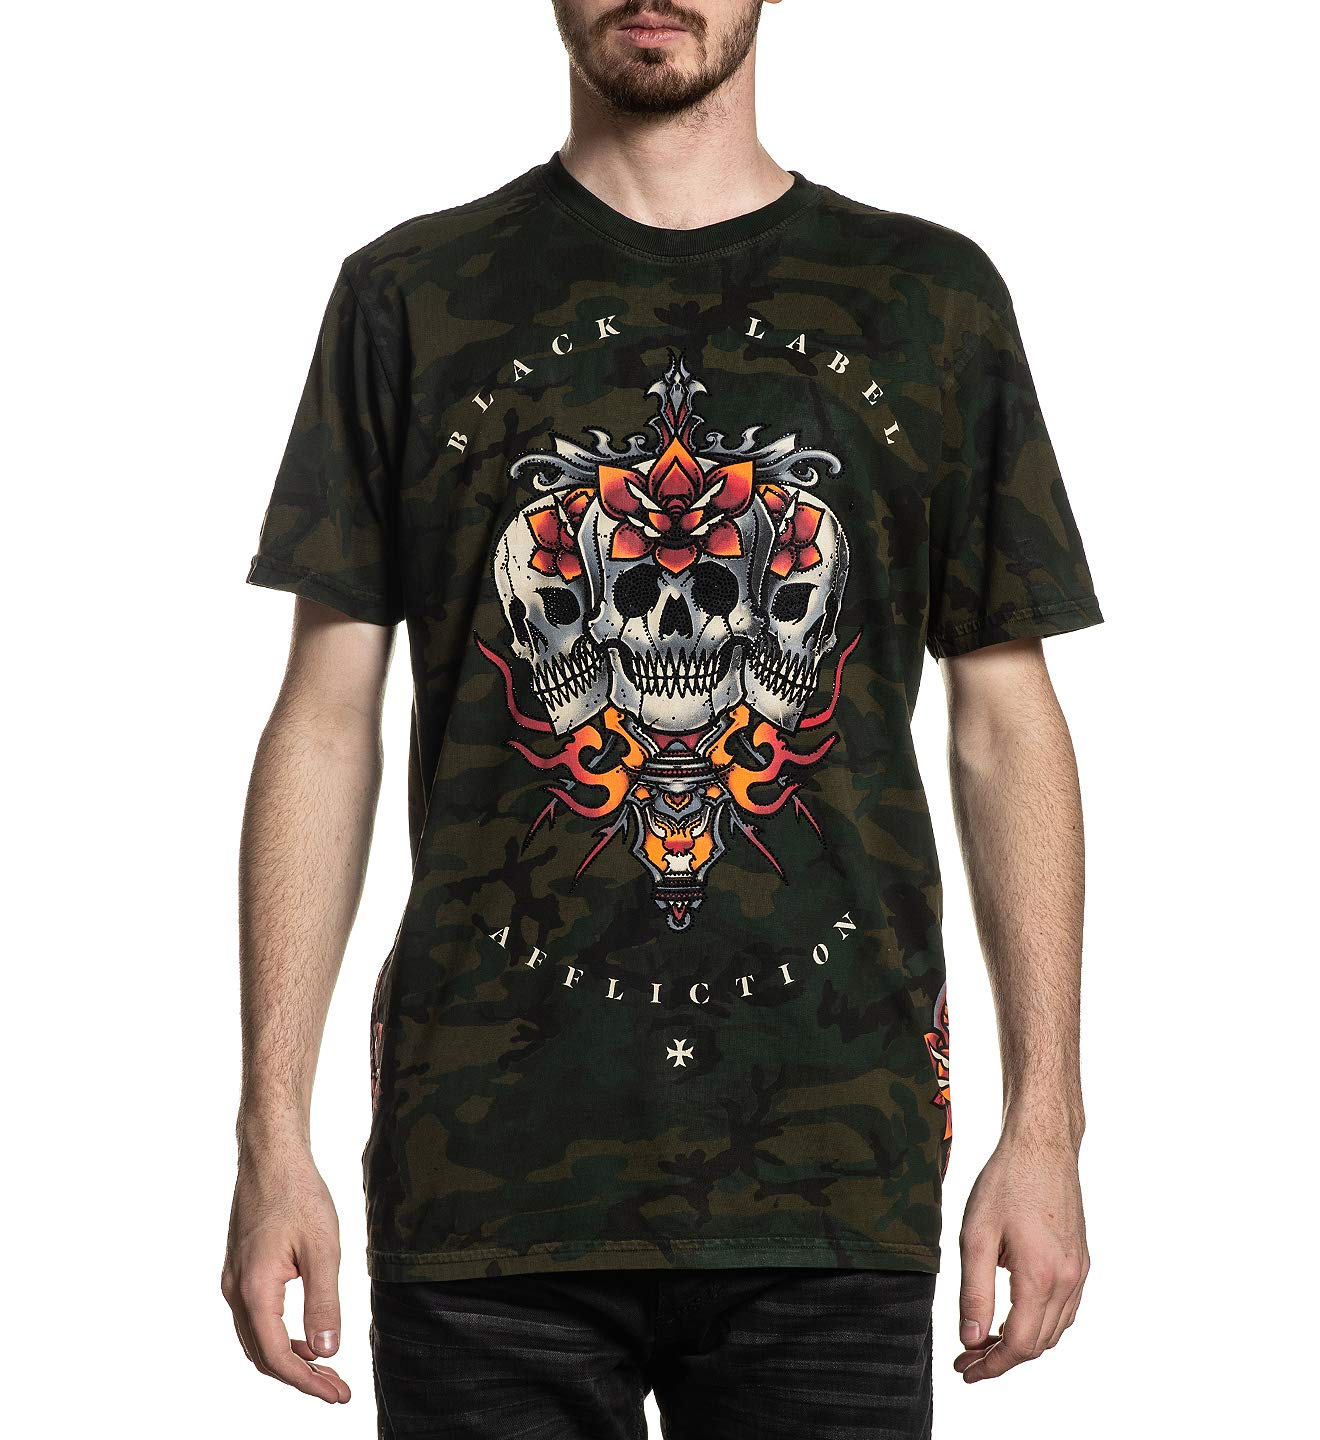 Affliction Men's Graphic T-Shirt, Wrecking Crew Variant, Short Sleeve Crew Neck Shirt